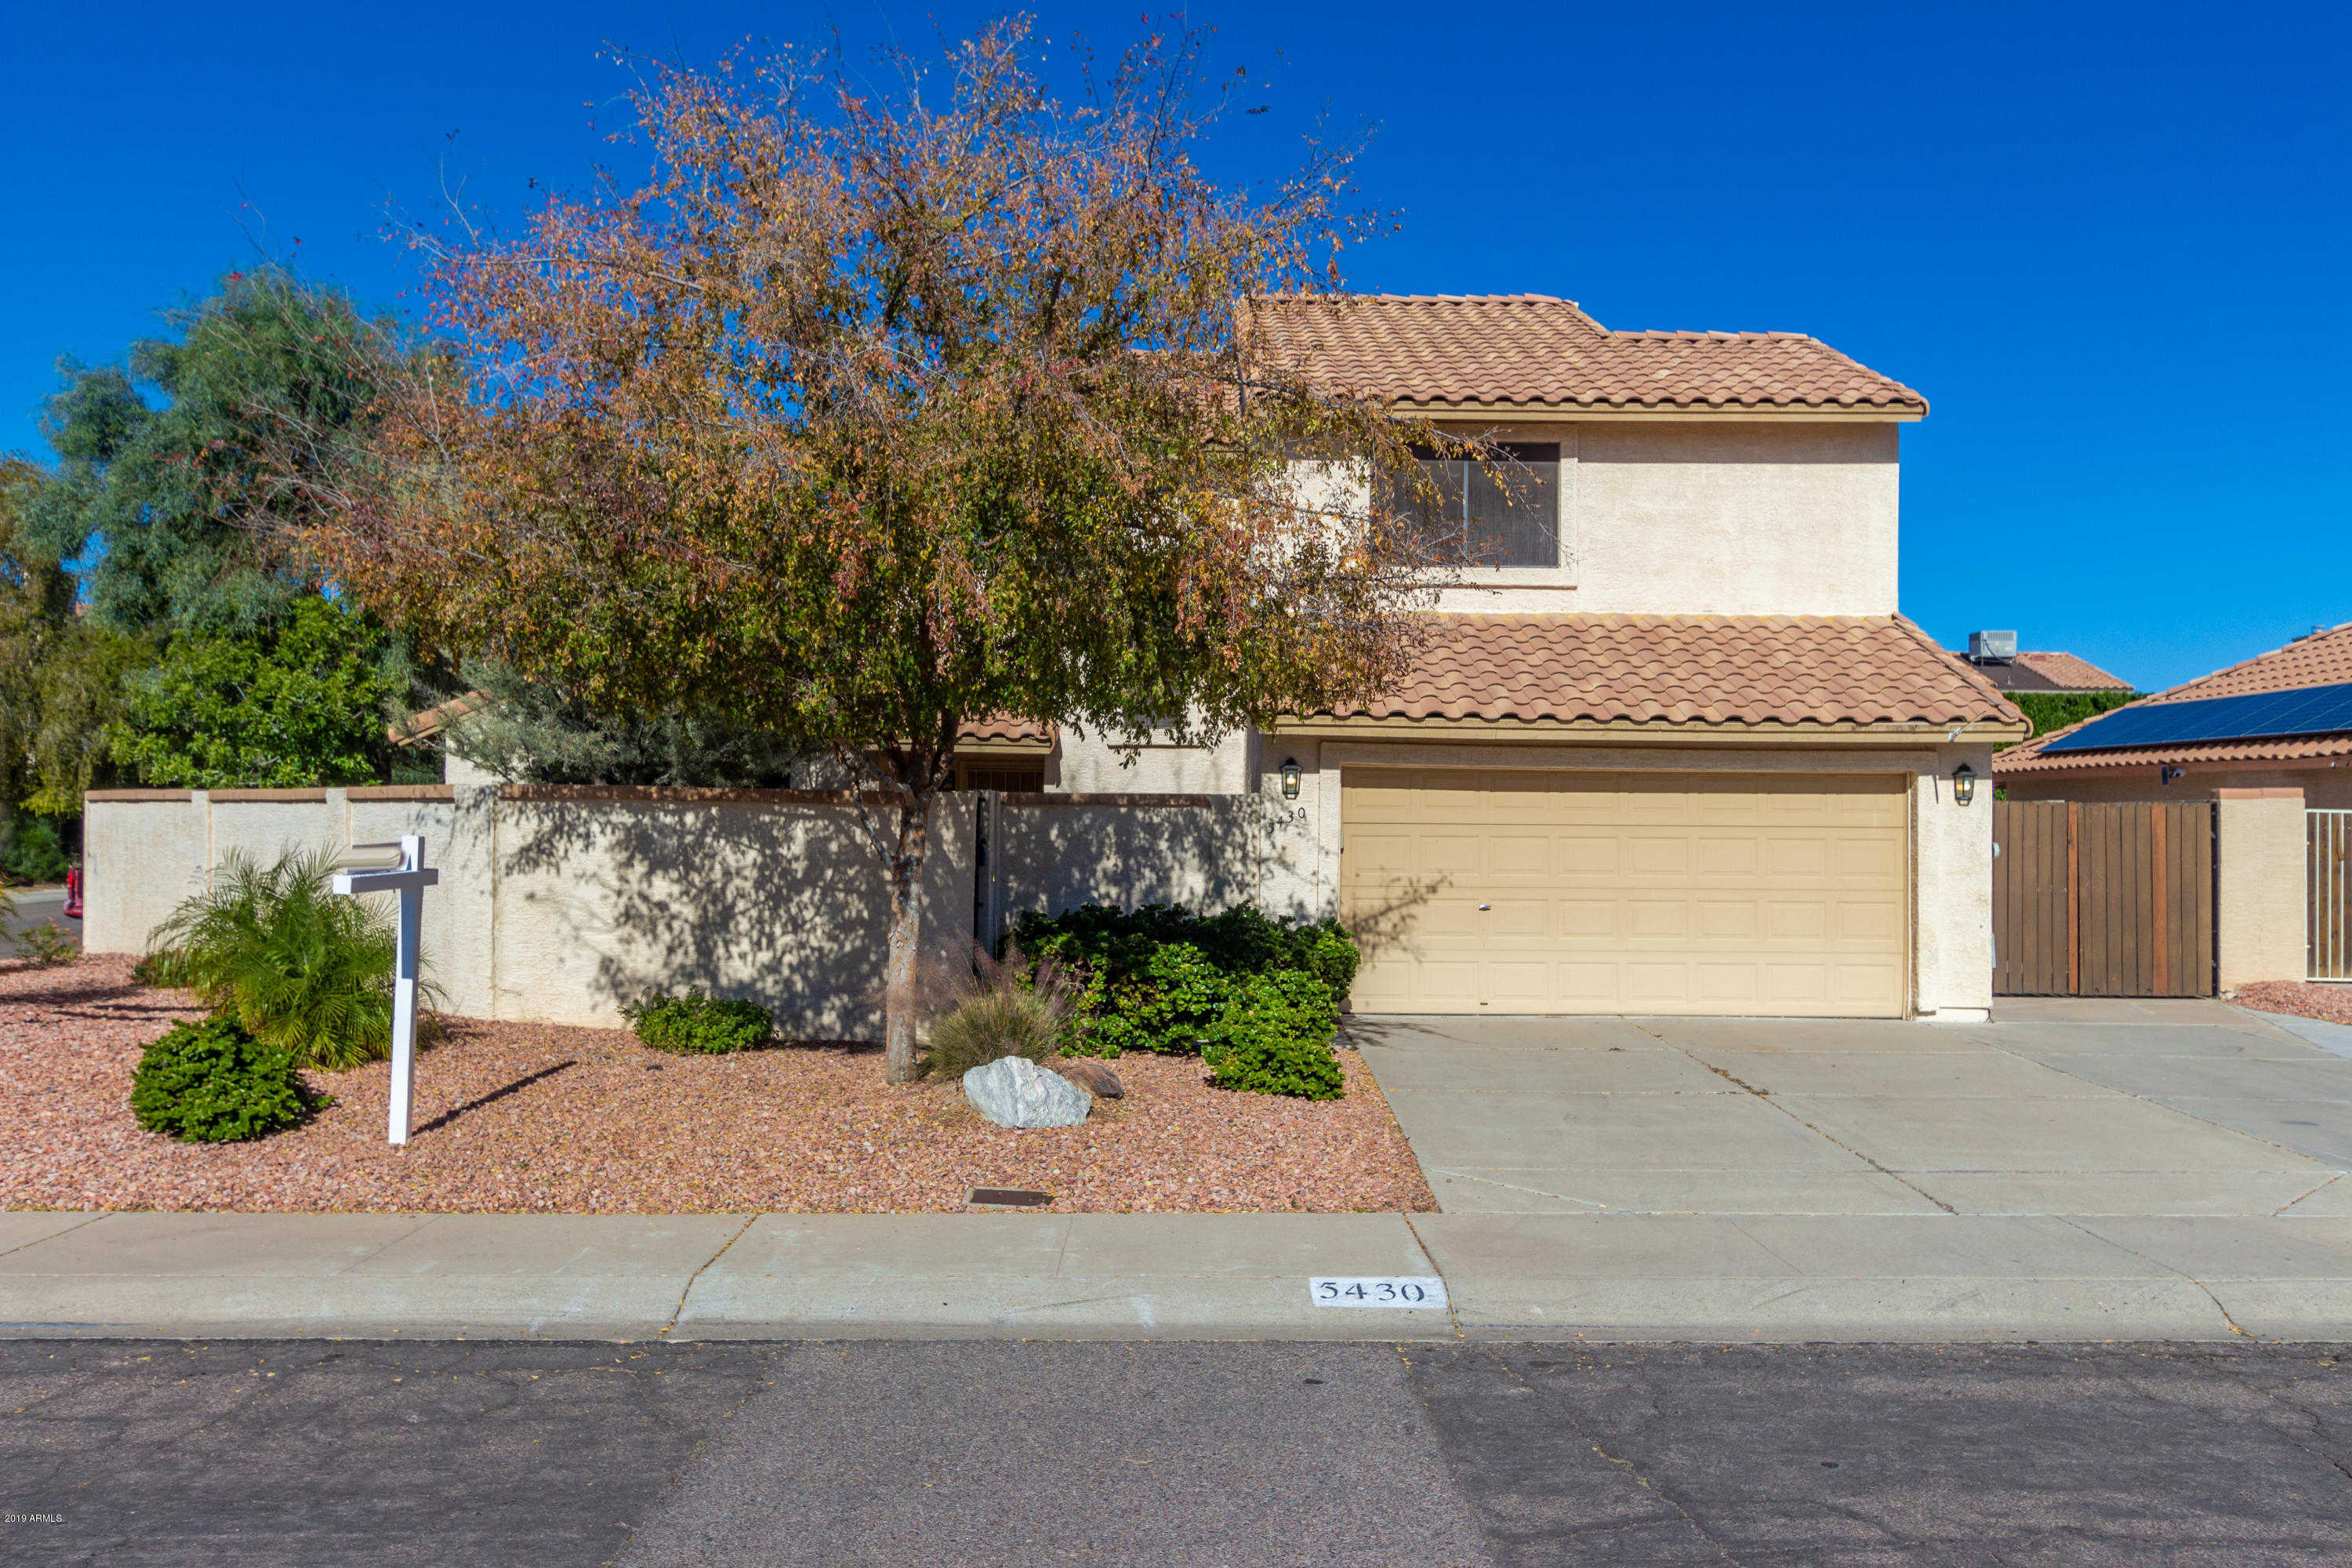 $305,000 - 3Br/3Ba - Home for Sale in Oakdale, Glendale